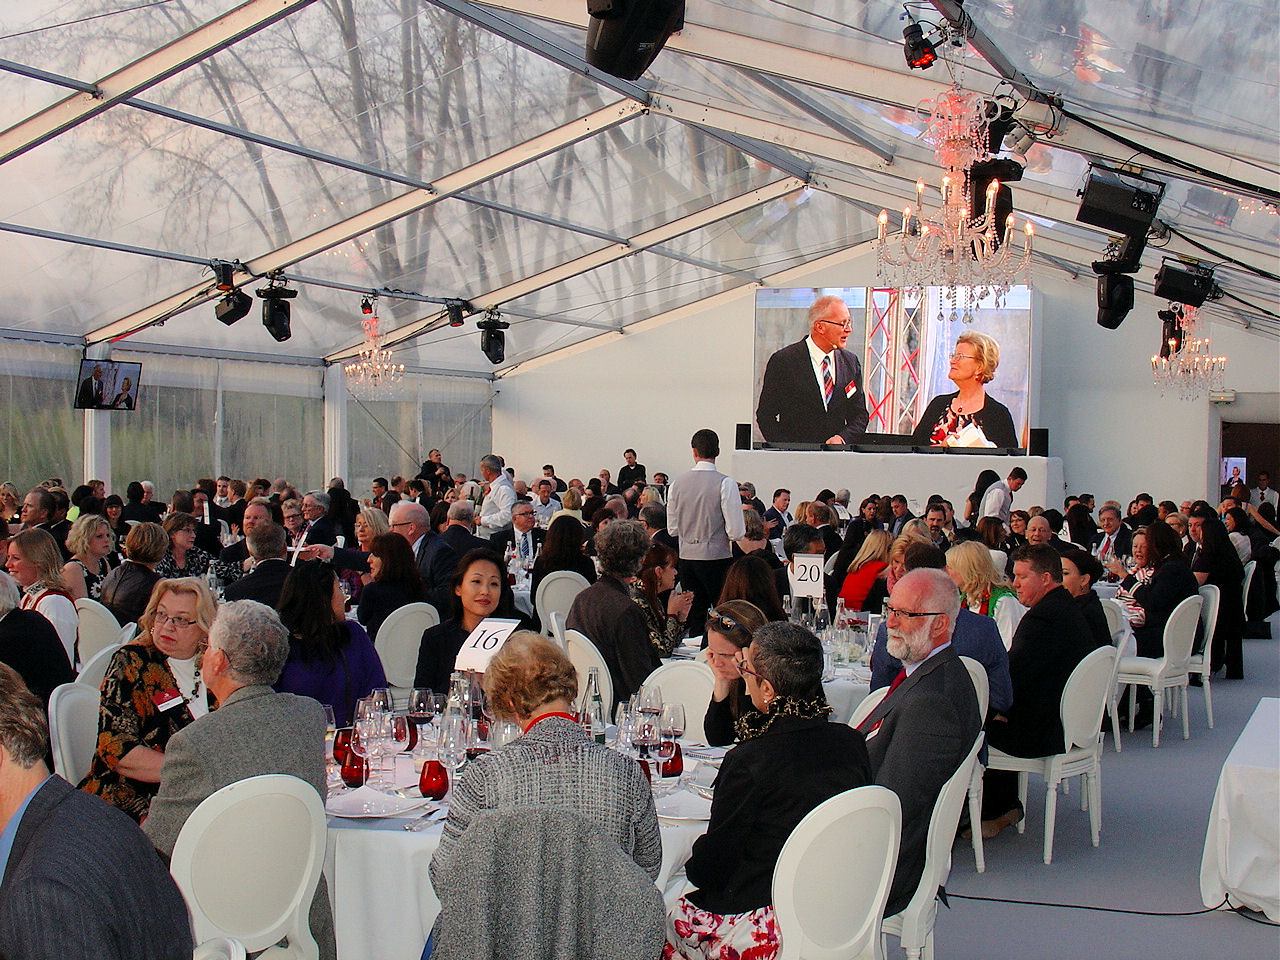 Inside the tent at le Pont du Gard for presentations, dinner and entertainment.